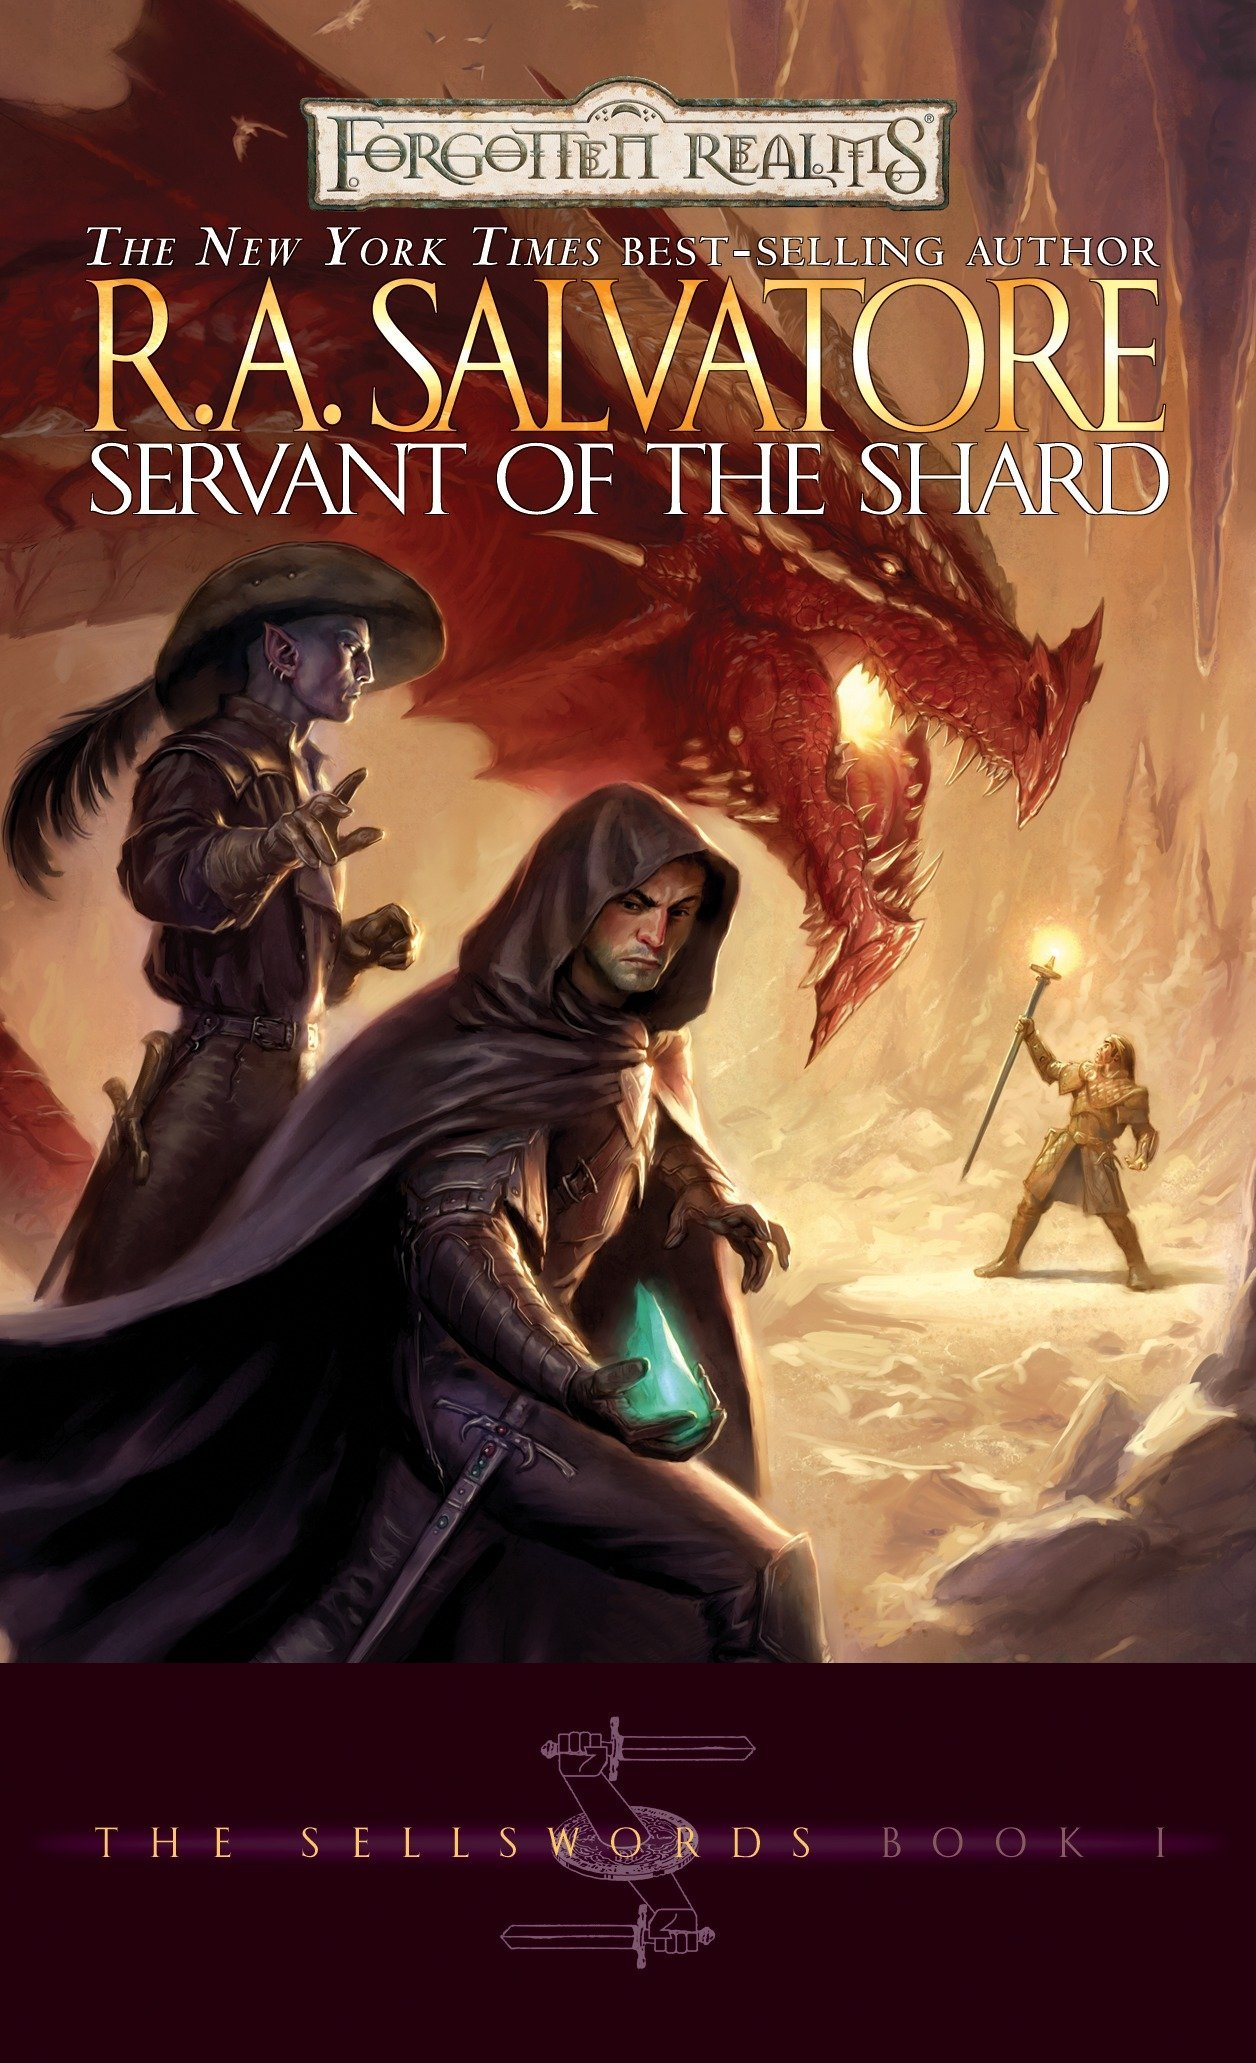 Servant of the Shard: The Sellswords, Book I